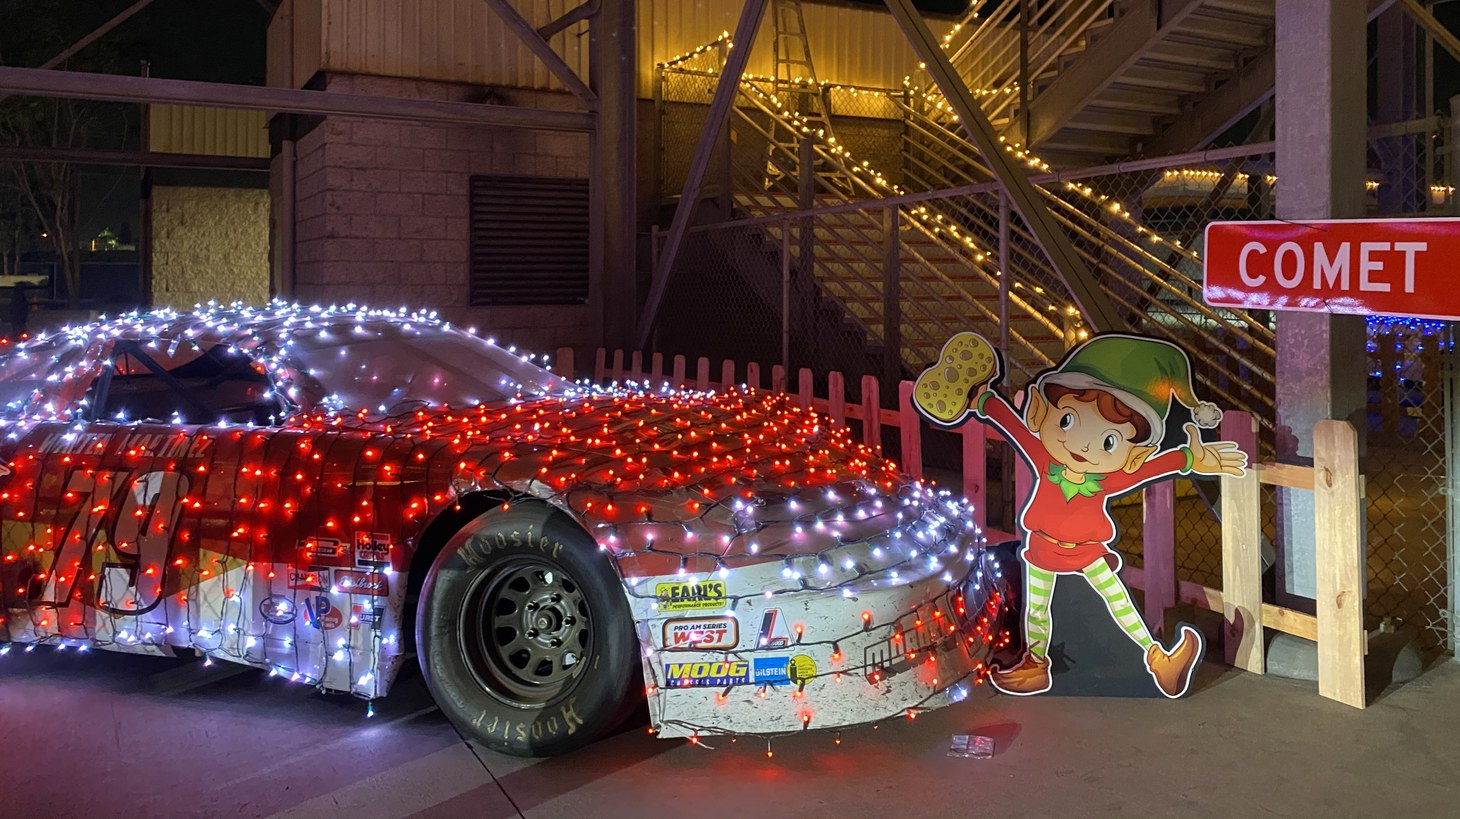 With Christmas still the granddaddy of all the holidays when it comes to decorating, festive displays have sprung up all over Southern California. The Irwindale Speedway has gone all-in on holiday lights while staying true to its motorsports roots.